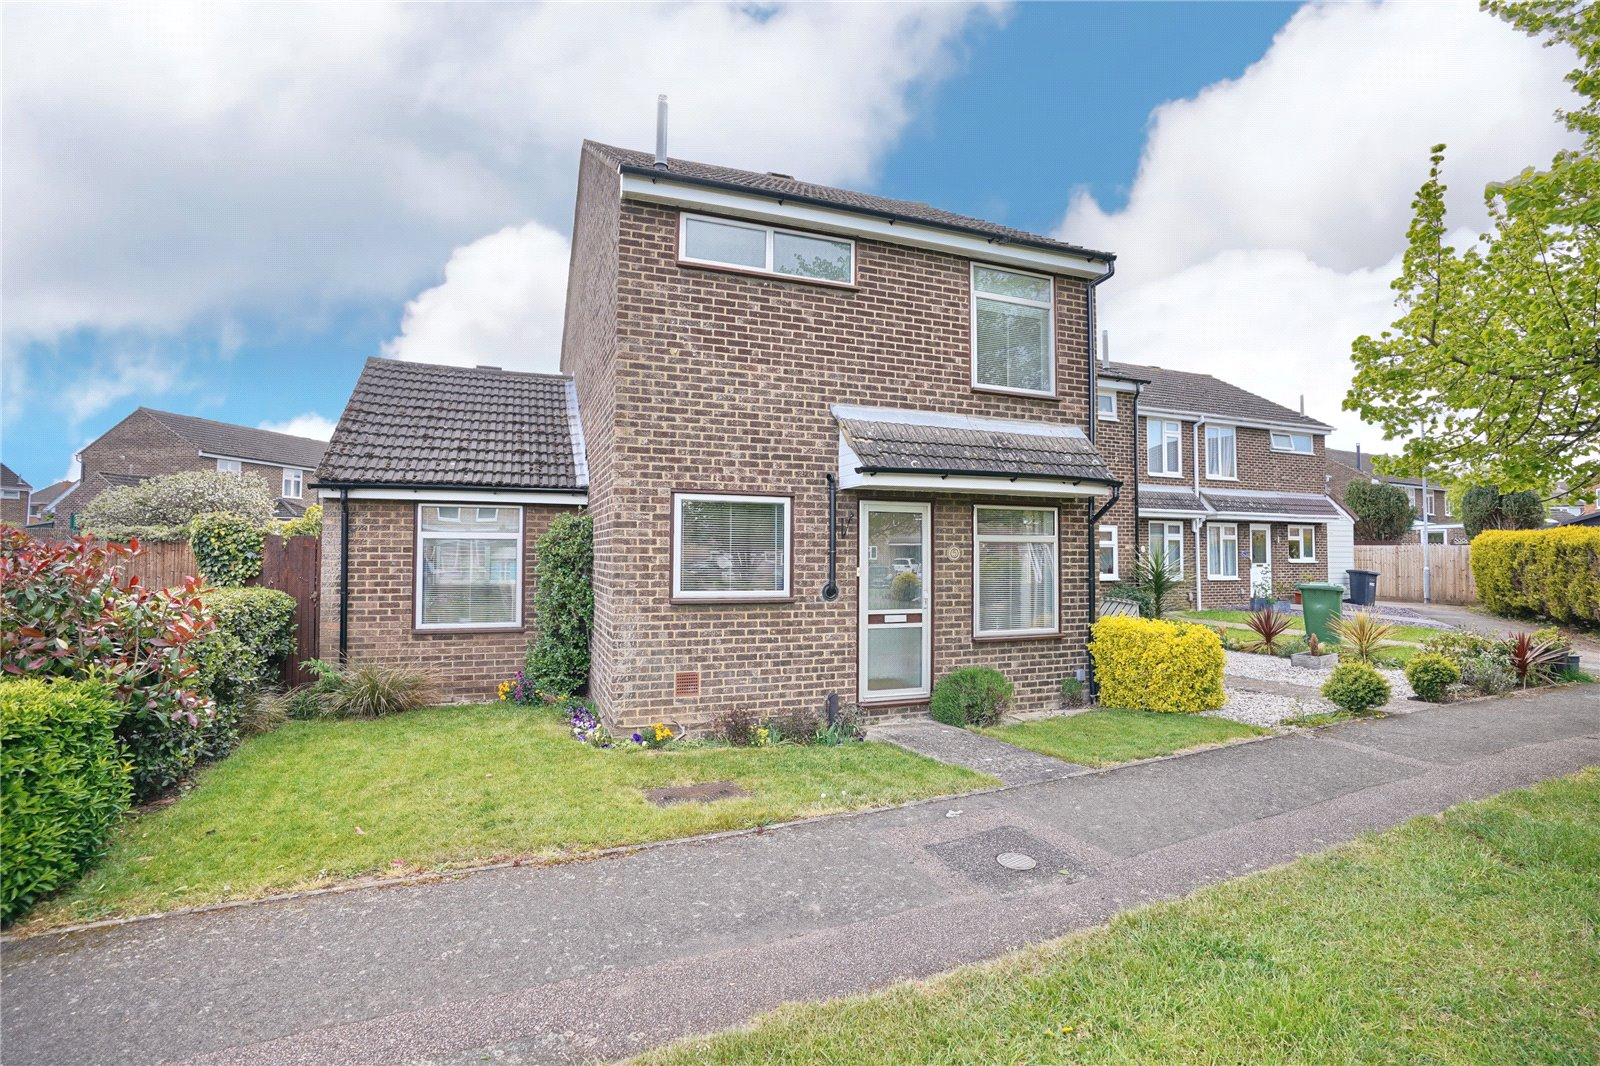 3 bed house for sale in Arnhem Close, Eaton Ford  - Property Image 1